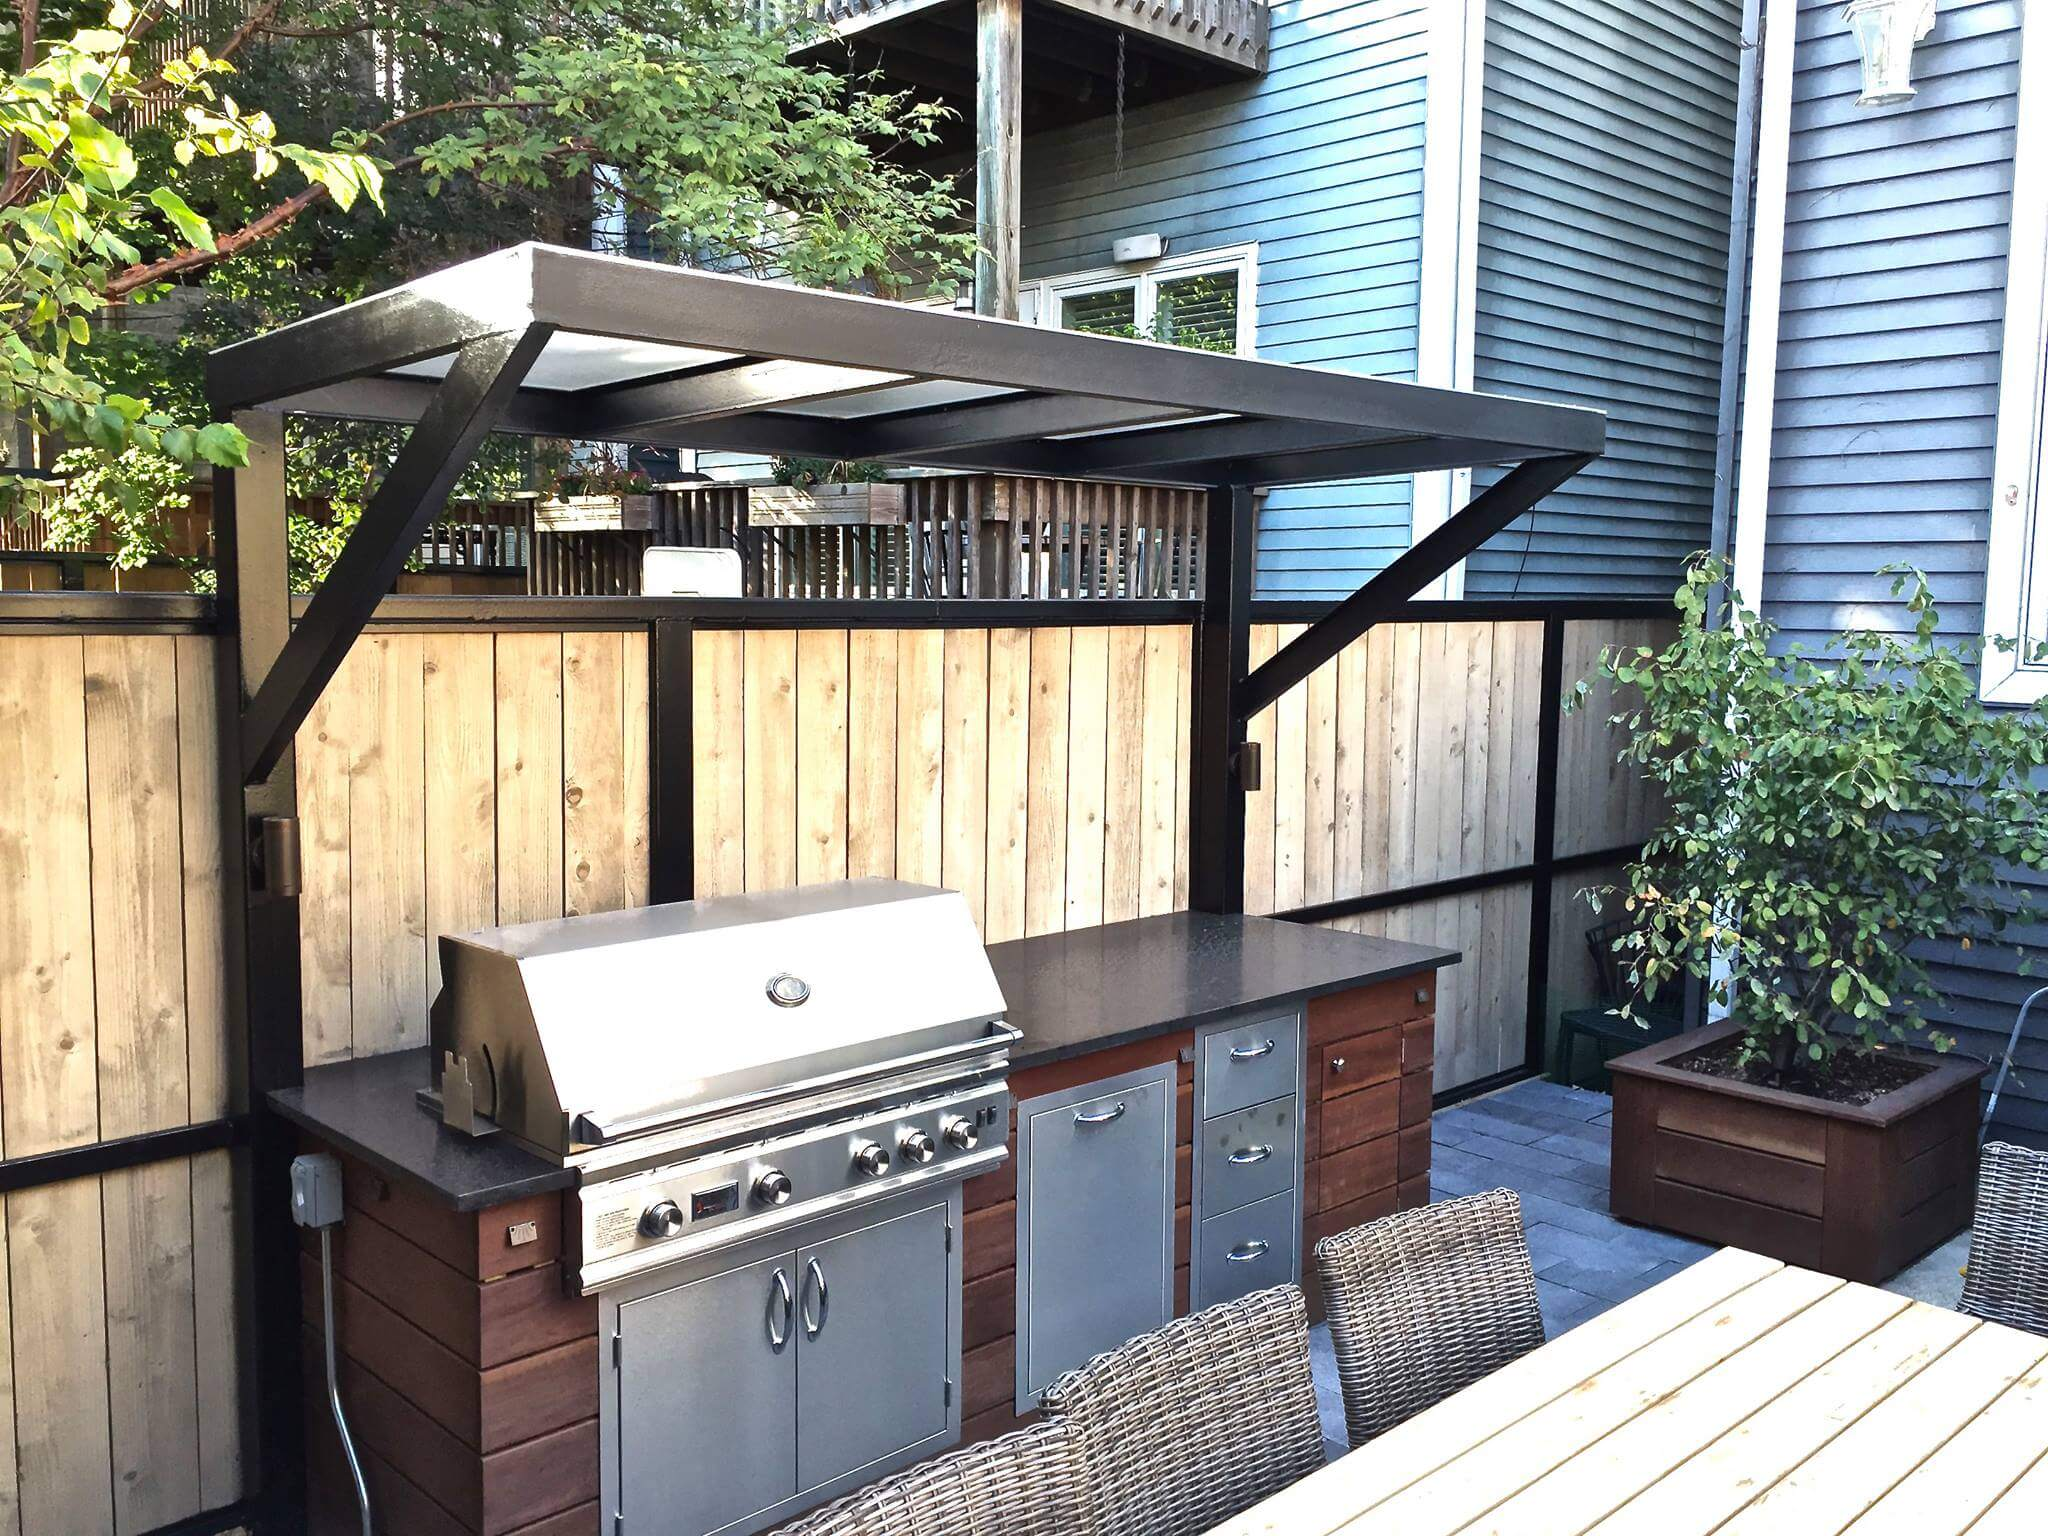 Patio With A Fireplace And A Gas Grill In Chicago. on Patio Grilling Area  id=15830